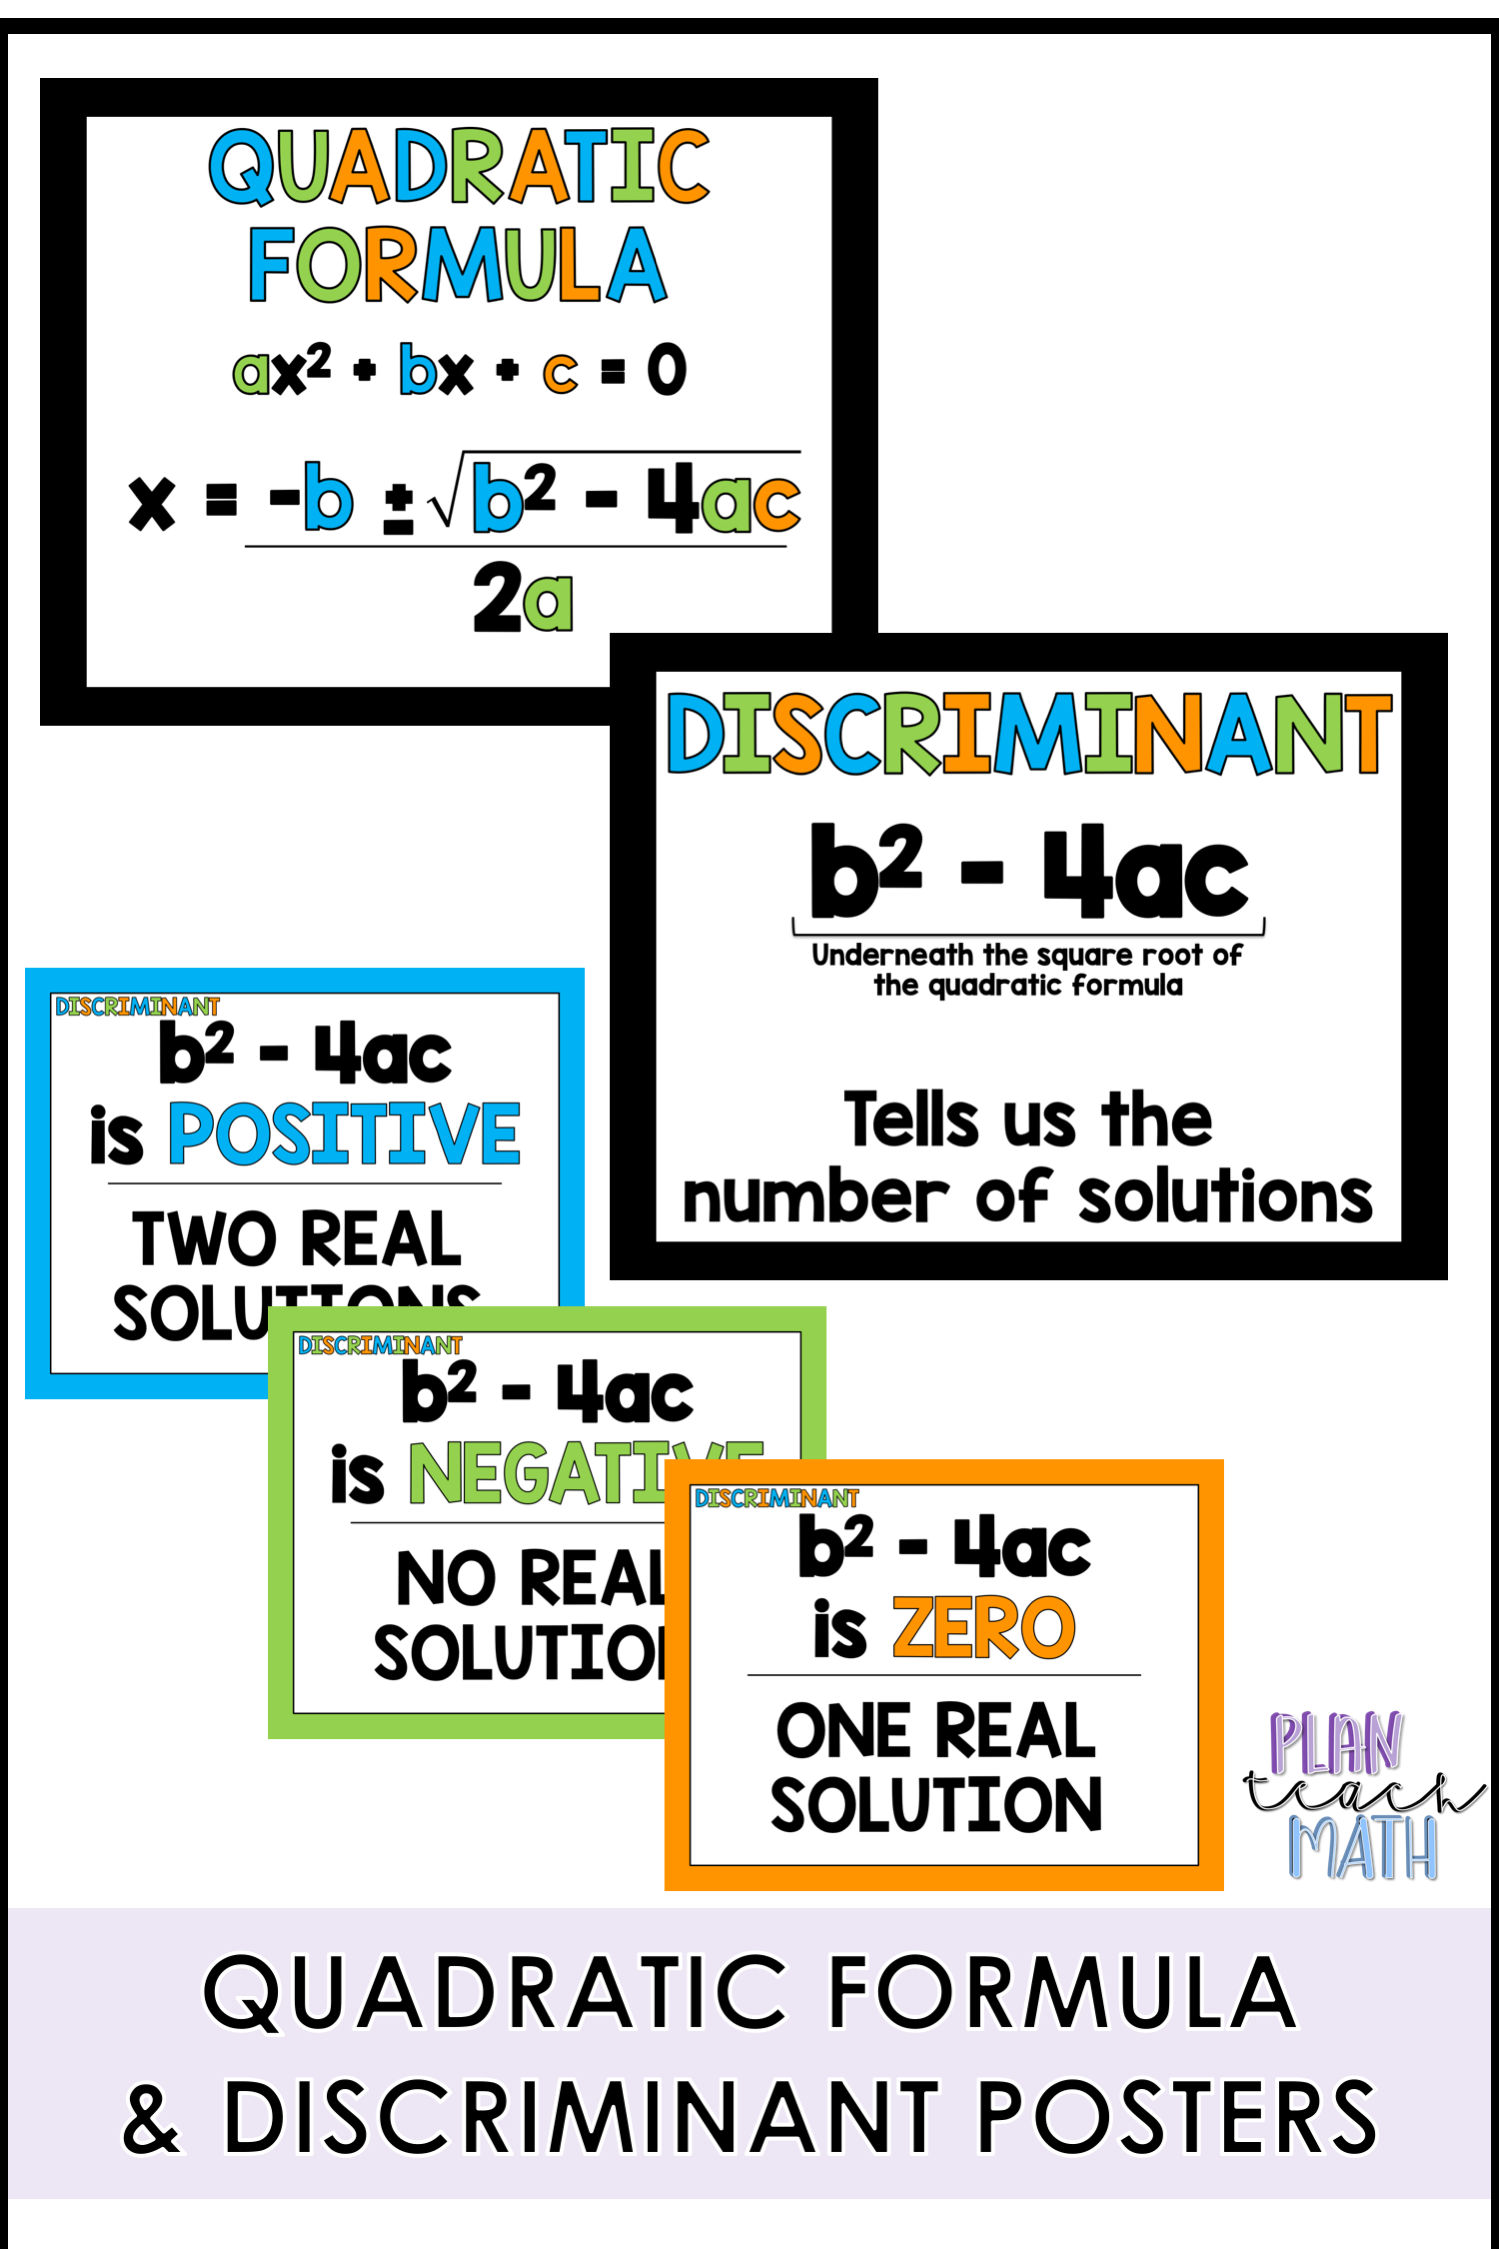 Quadratic Formula And Discriminant Posters Are Great To Hang Up In Your Classroom While Teaching Quadratic Functions Qua Teaching Math Teaching Plan Teaching